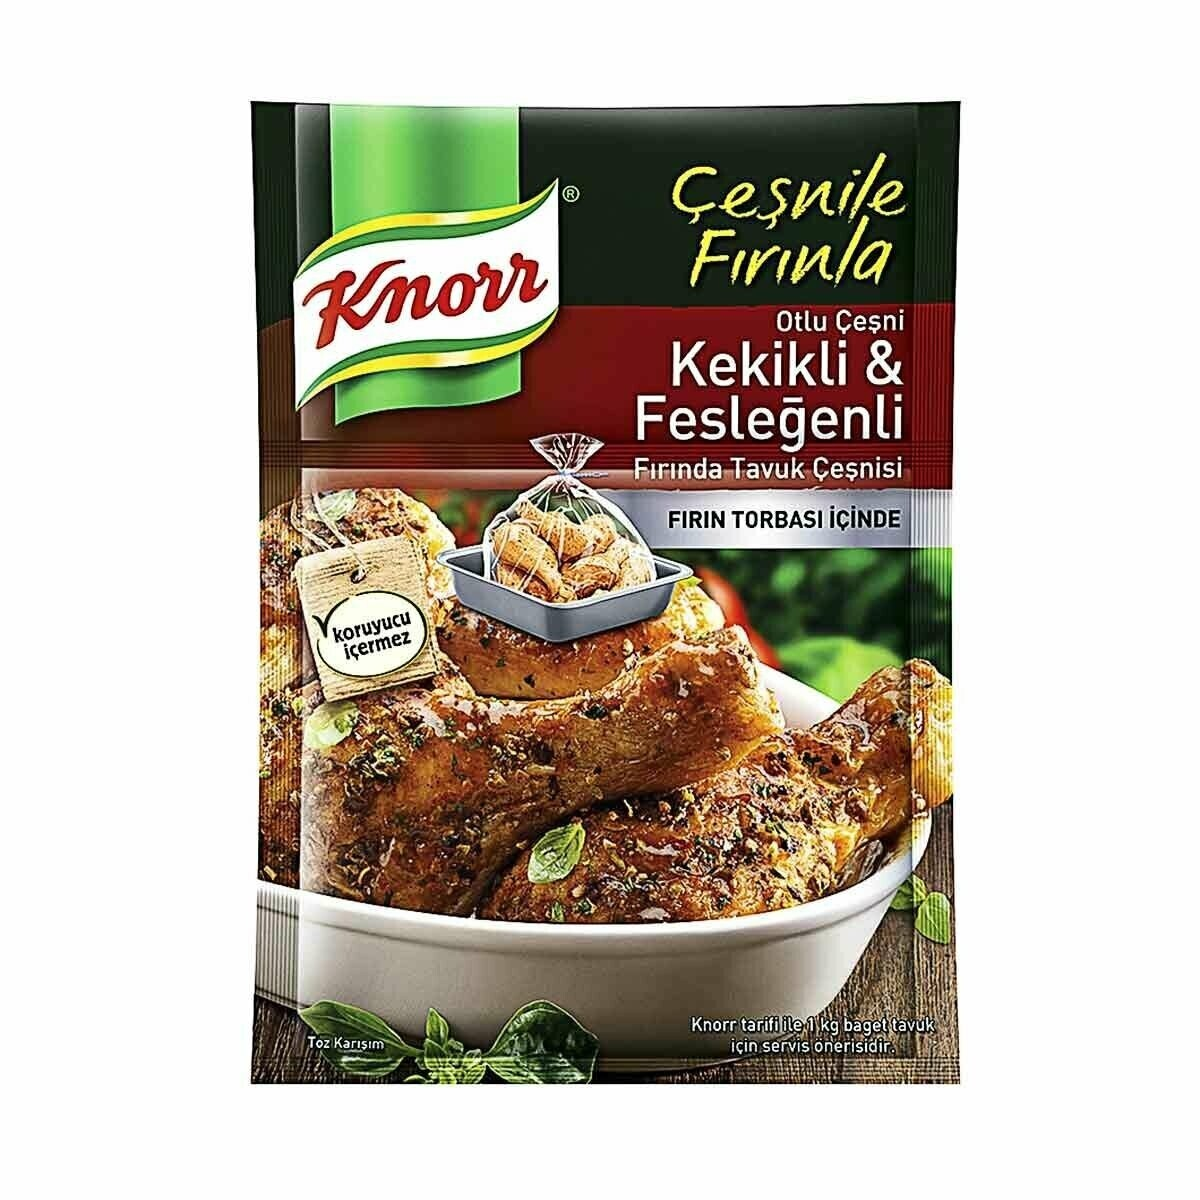 Knorr  Kekikli Feslegenli Tavuk Cesni 29gr Chicken Grill Mix with Thyme and Basil